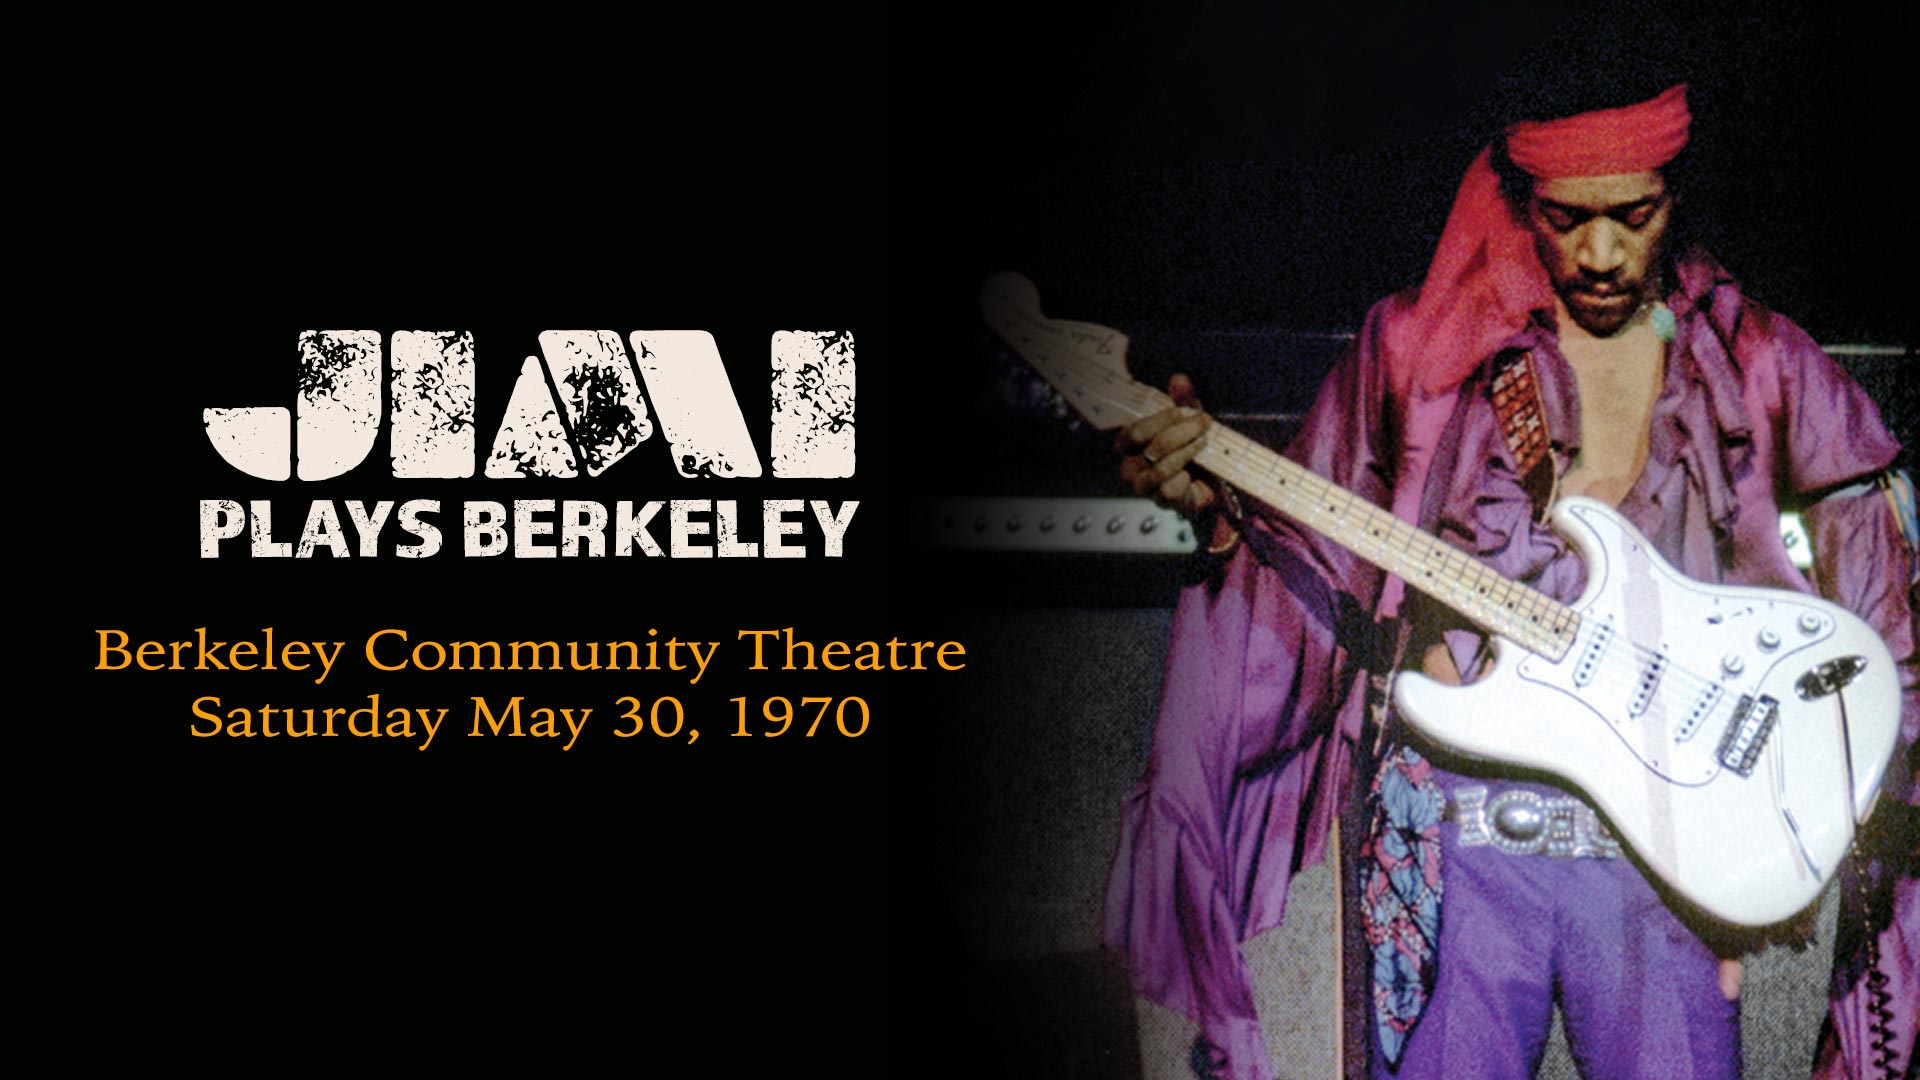 Jimi Hendrix: Jimi Plays Berkeley (Live Performance)